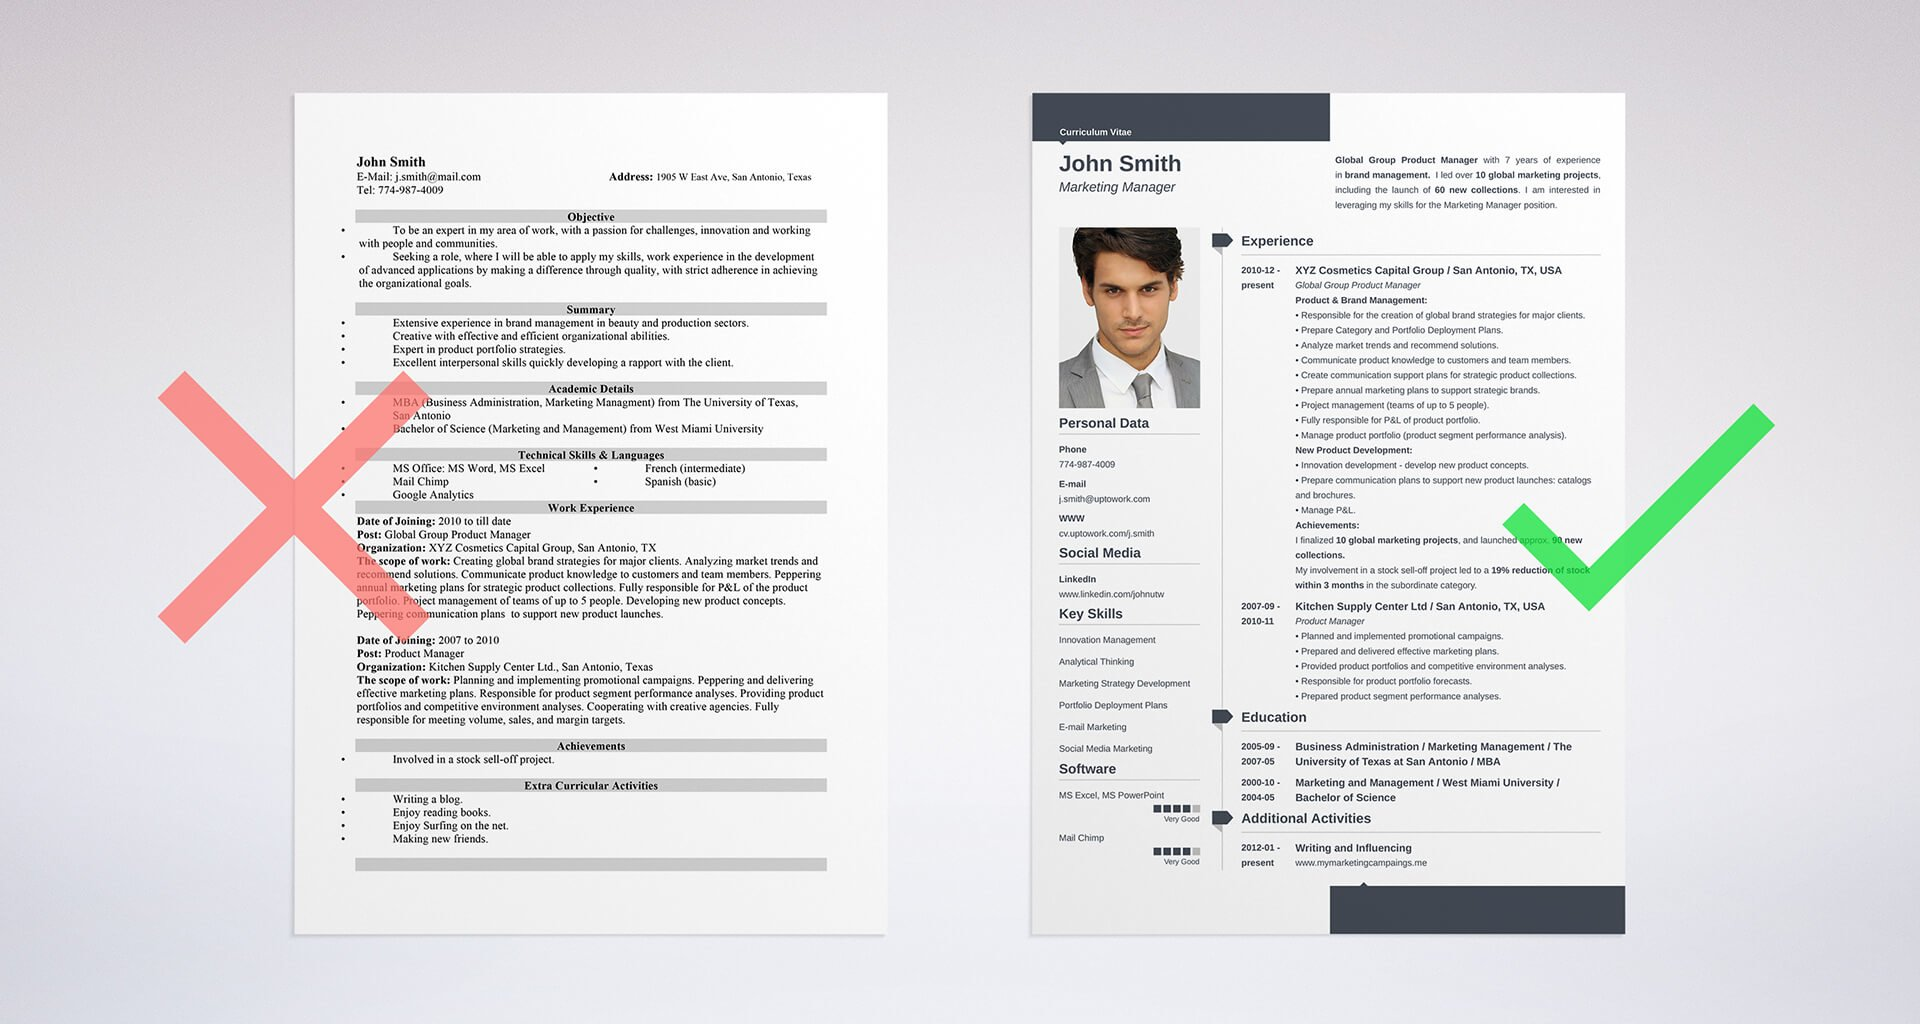 30 best examples of what skills to put on a resume proven tips - Best Professional Resume Samples